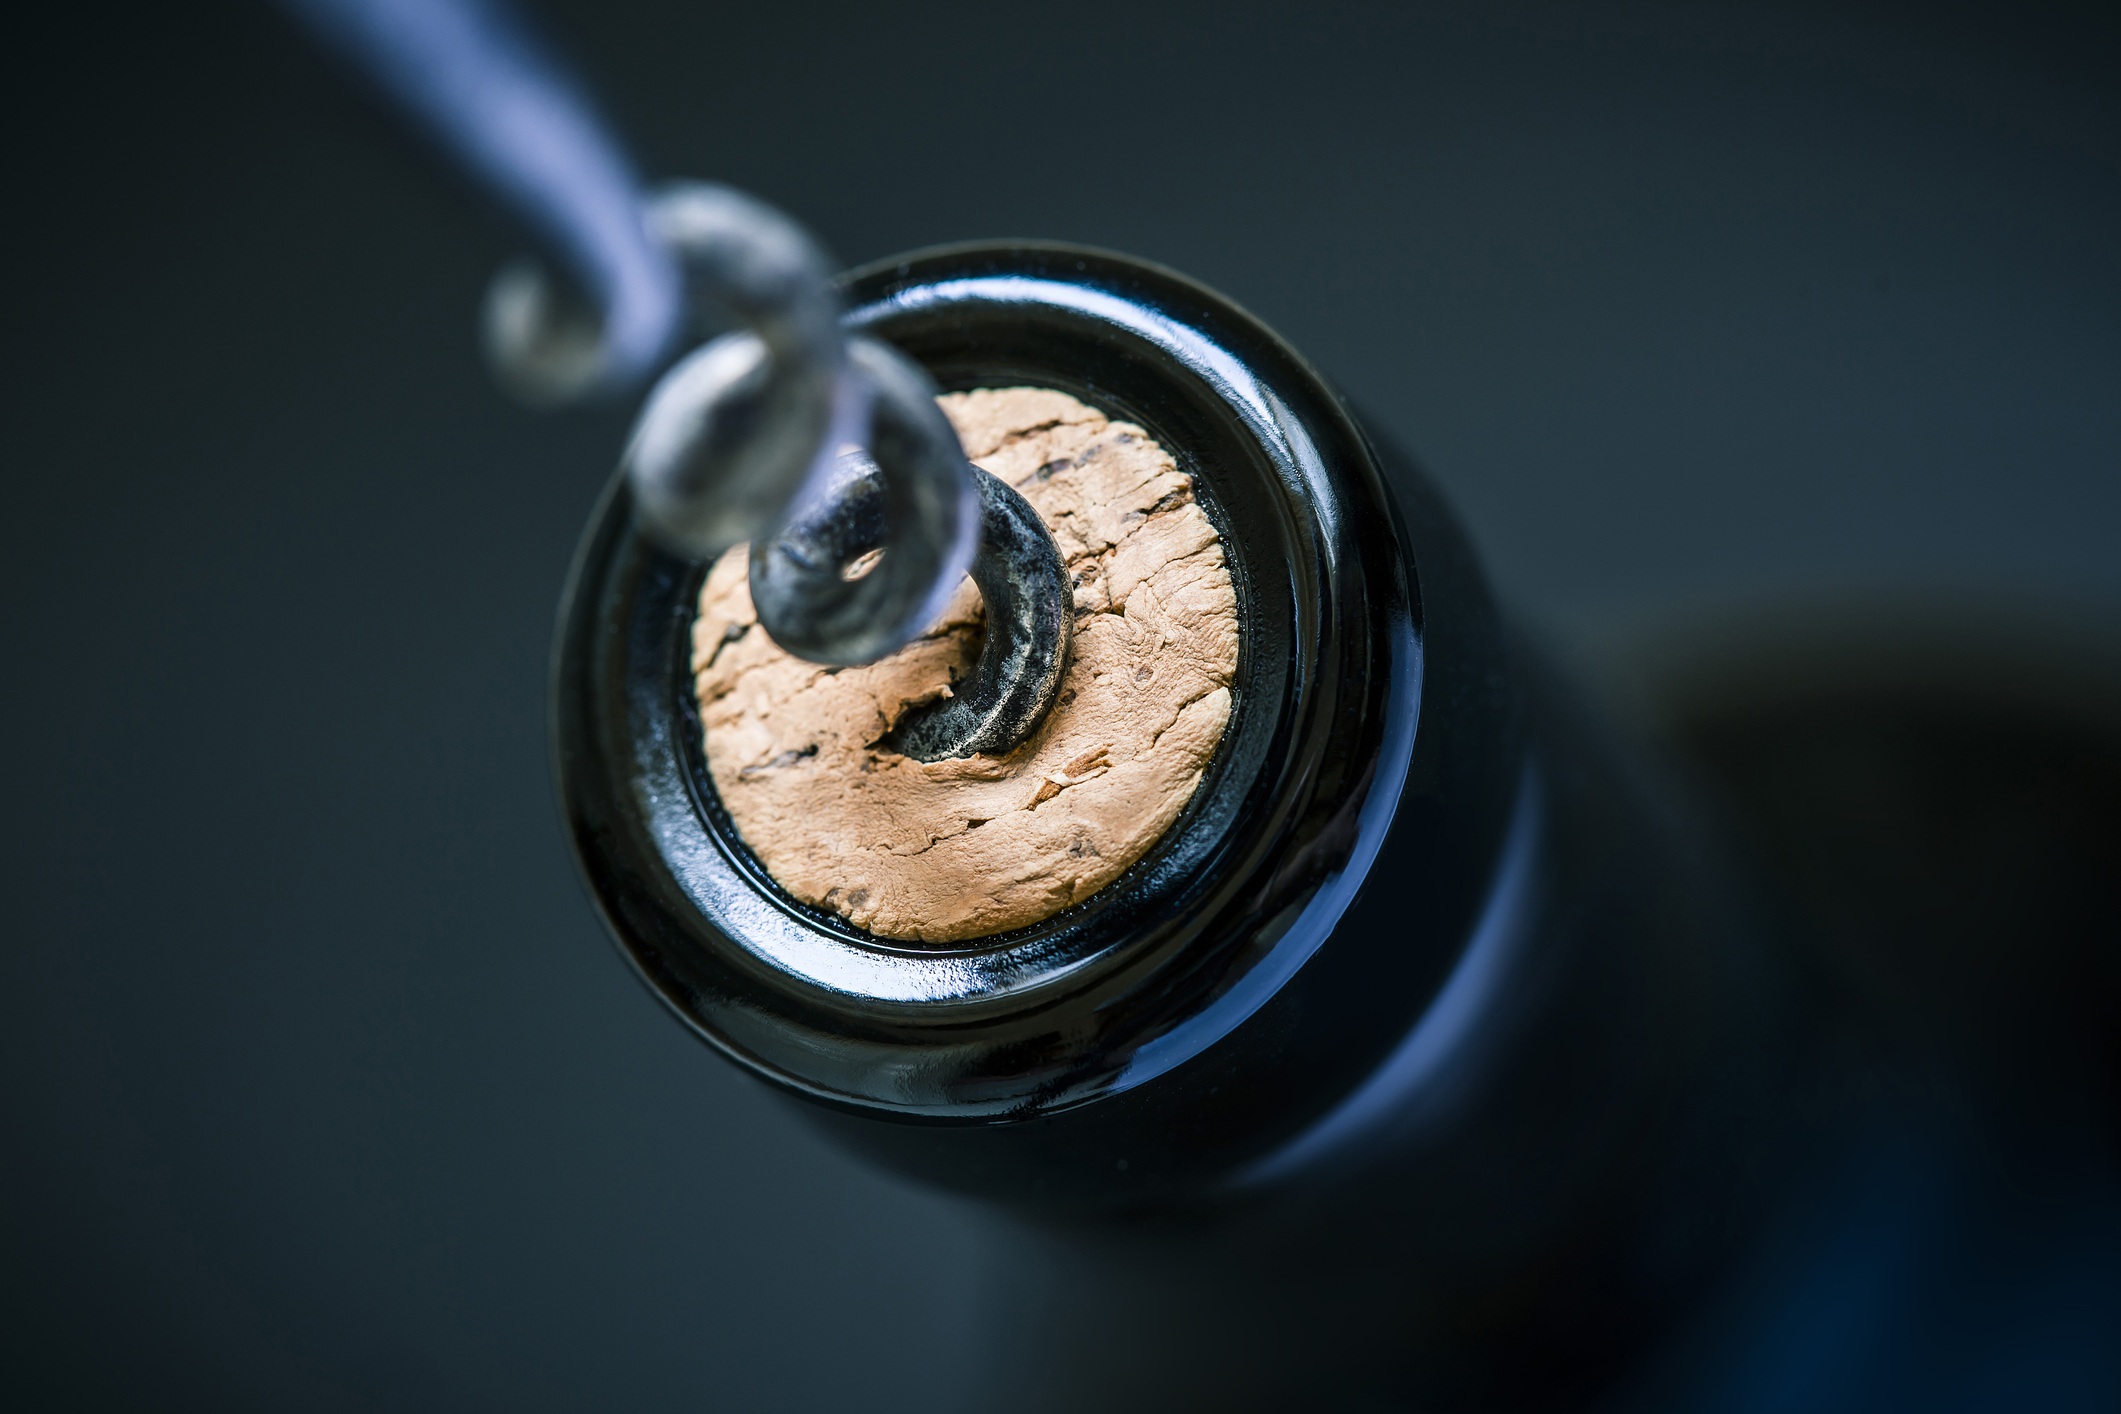 close up of a corkscrew in the cork of a wine bottle